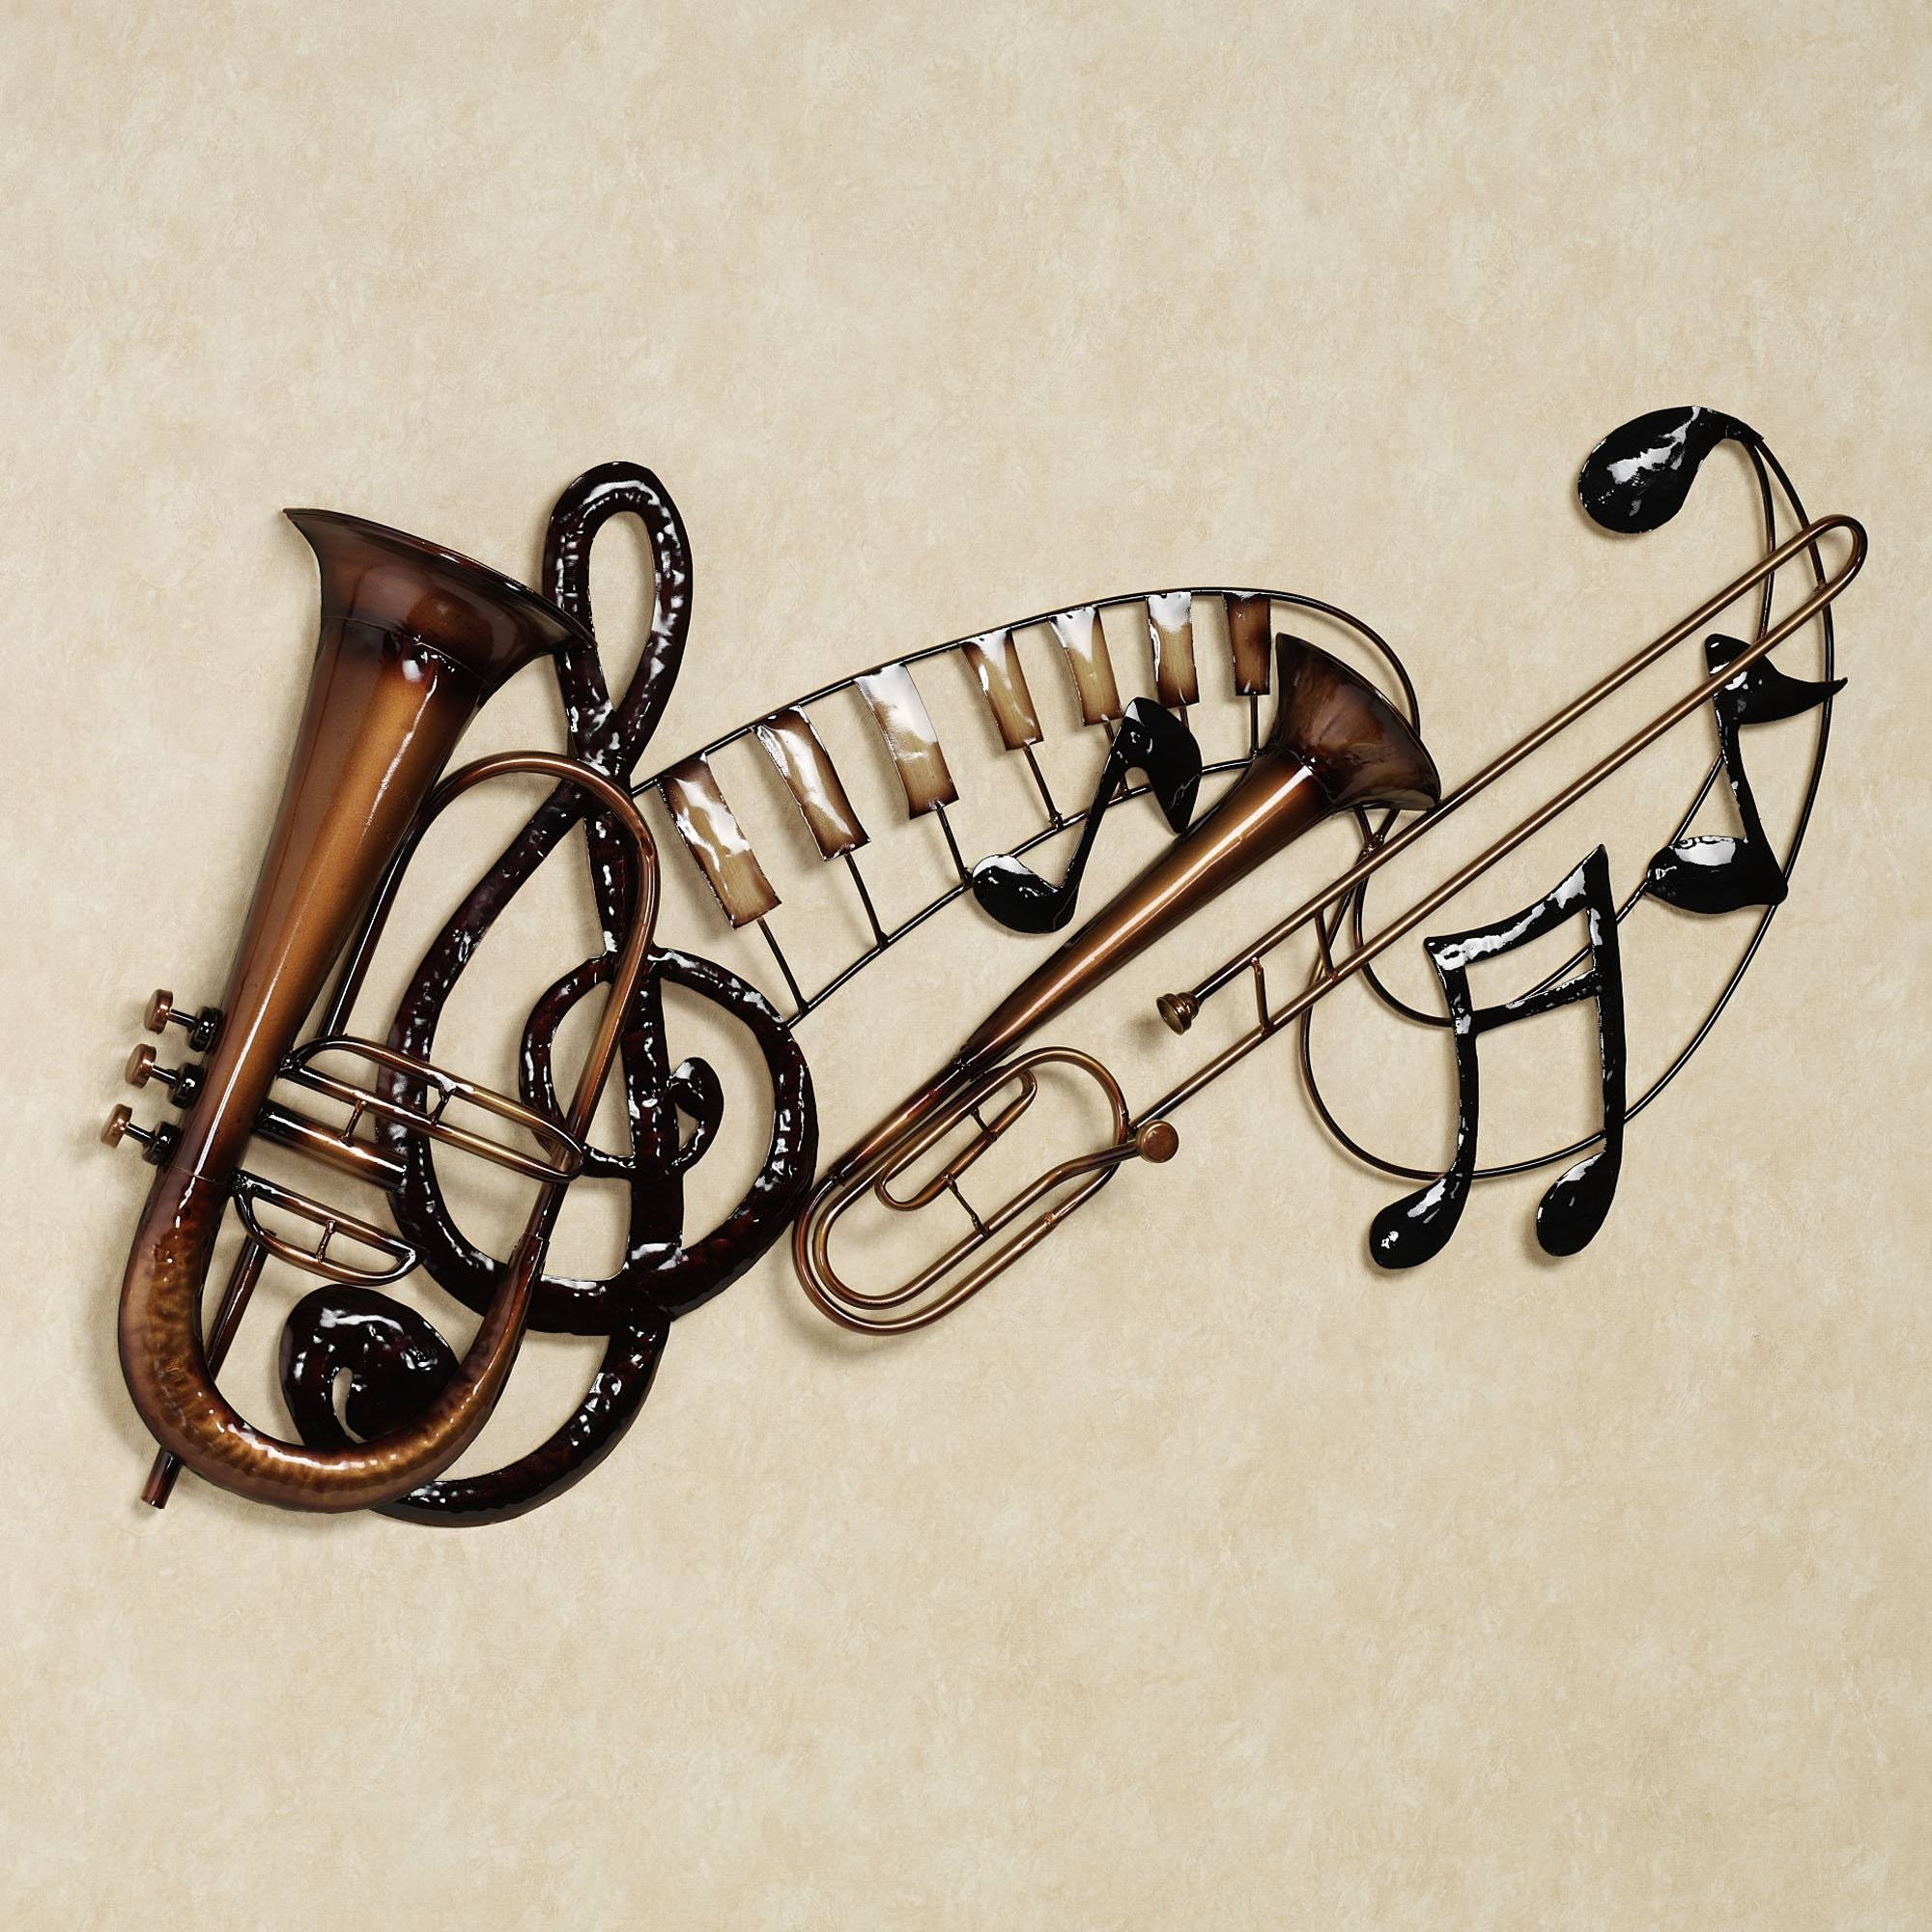 Wall Art Design Ideas: Interlude Unique Metal Wall Art Music Within Best And Newest Unique Metal Wall Art (View 12 of 20)